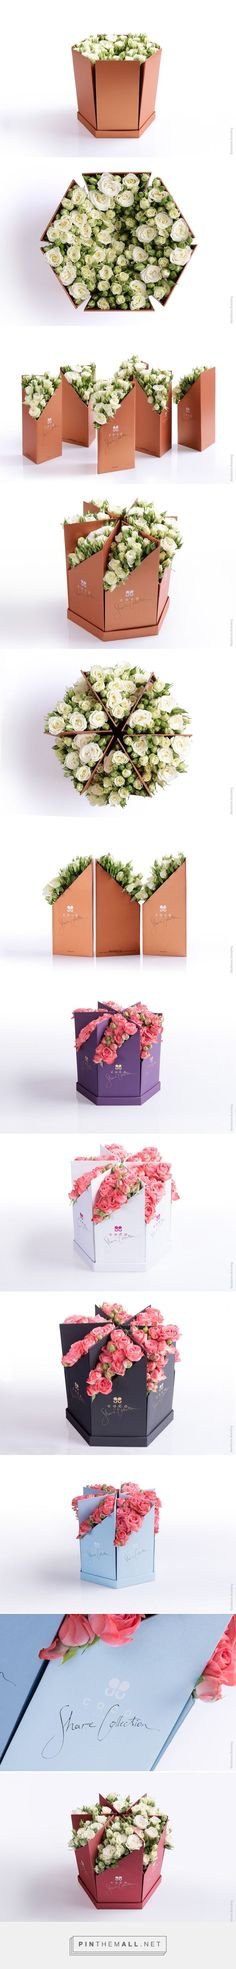 """Calligraphy, graphic design and packaging for Coco Fiori """"Share Collection"""" on Behance by Backbone Branding Yervan, Armenia curated by Packaging Diva PD. A big bouquet of flowers which you can share into parts and present a piece of beauty to the people y Flower Packaging, Cool Packaging, Brand Packaging, Design Packaging, Packaging Ideas, Big Bouquet Of Flowers, Bouquet Box, Fleur Design, Packaging Design Inspiration"""